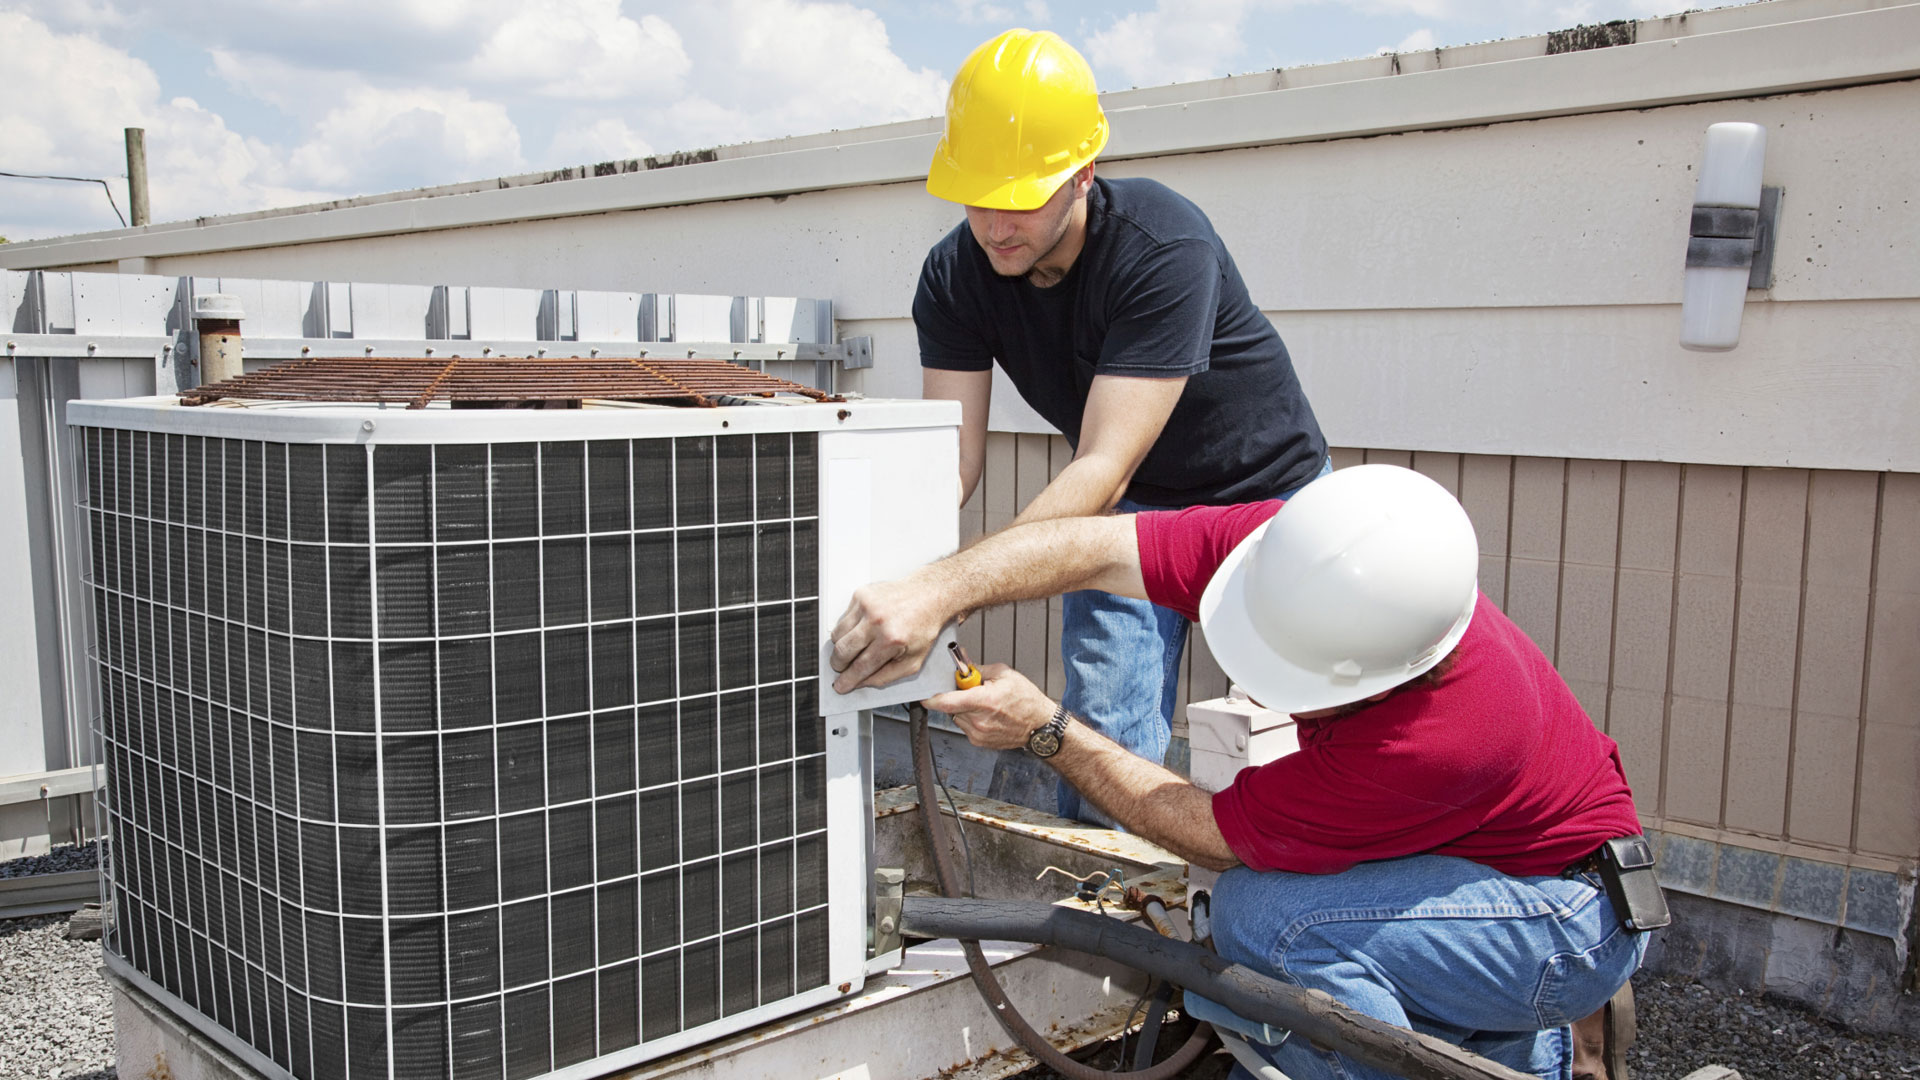 HVAC Contractor in Hyderabad, MS Air System : 8801112229 | M S Air Systems | HVAC Contractor in hyderabad,HVAC Contractor services in Hyderabad,HVAC Contractor in vijayawada,HVAC Contractor service in vijayawada,HVAC Contractor in Hyderabad - GL76874